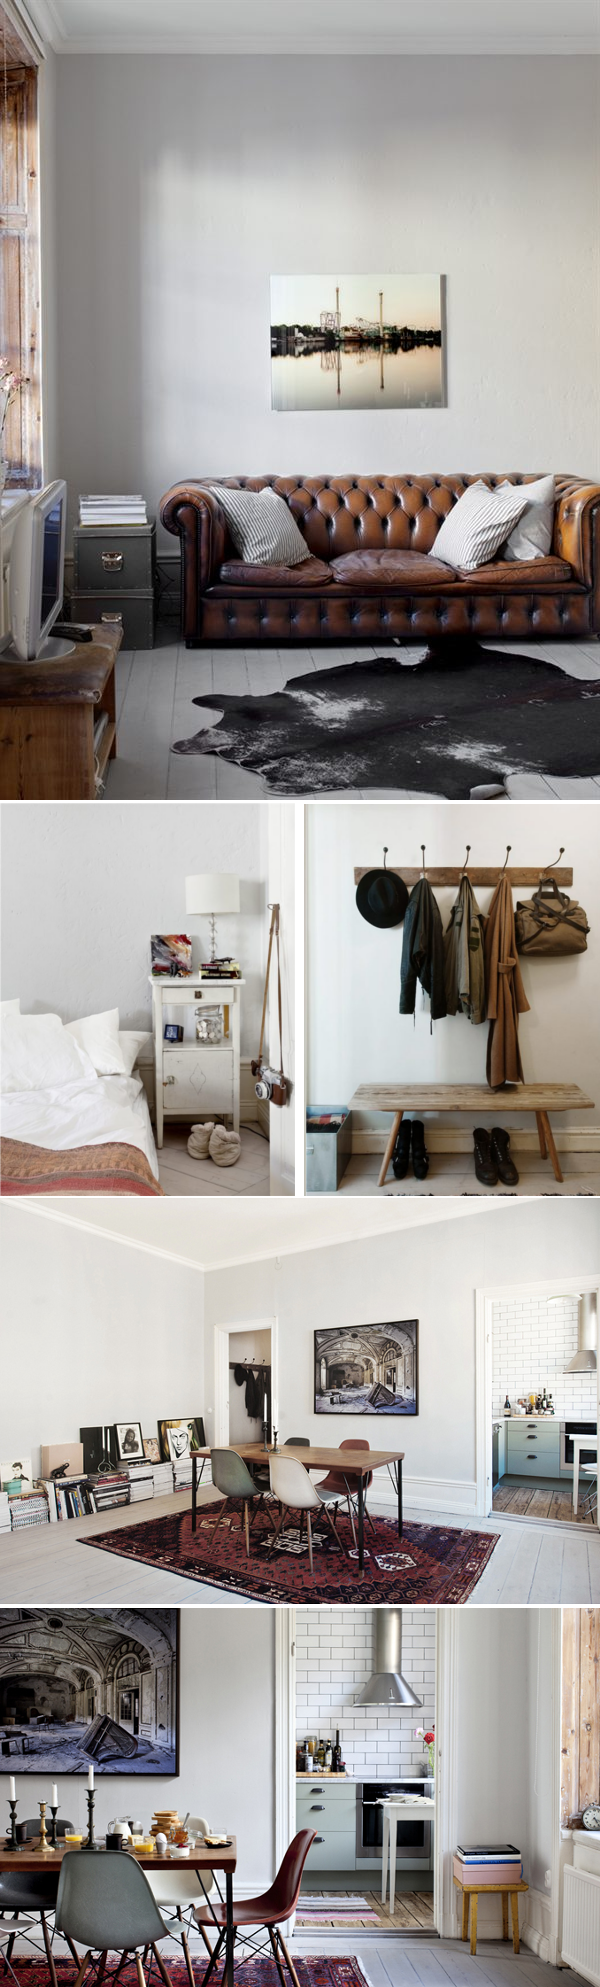 42m2 Stockholm // I love everything, except for the animal rug in the first